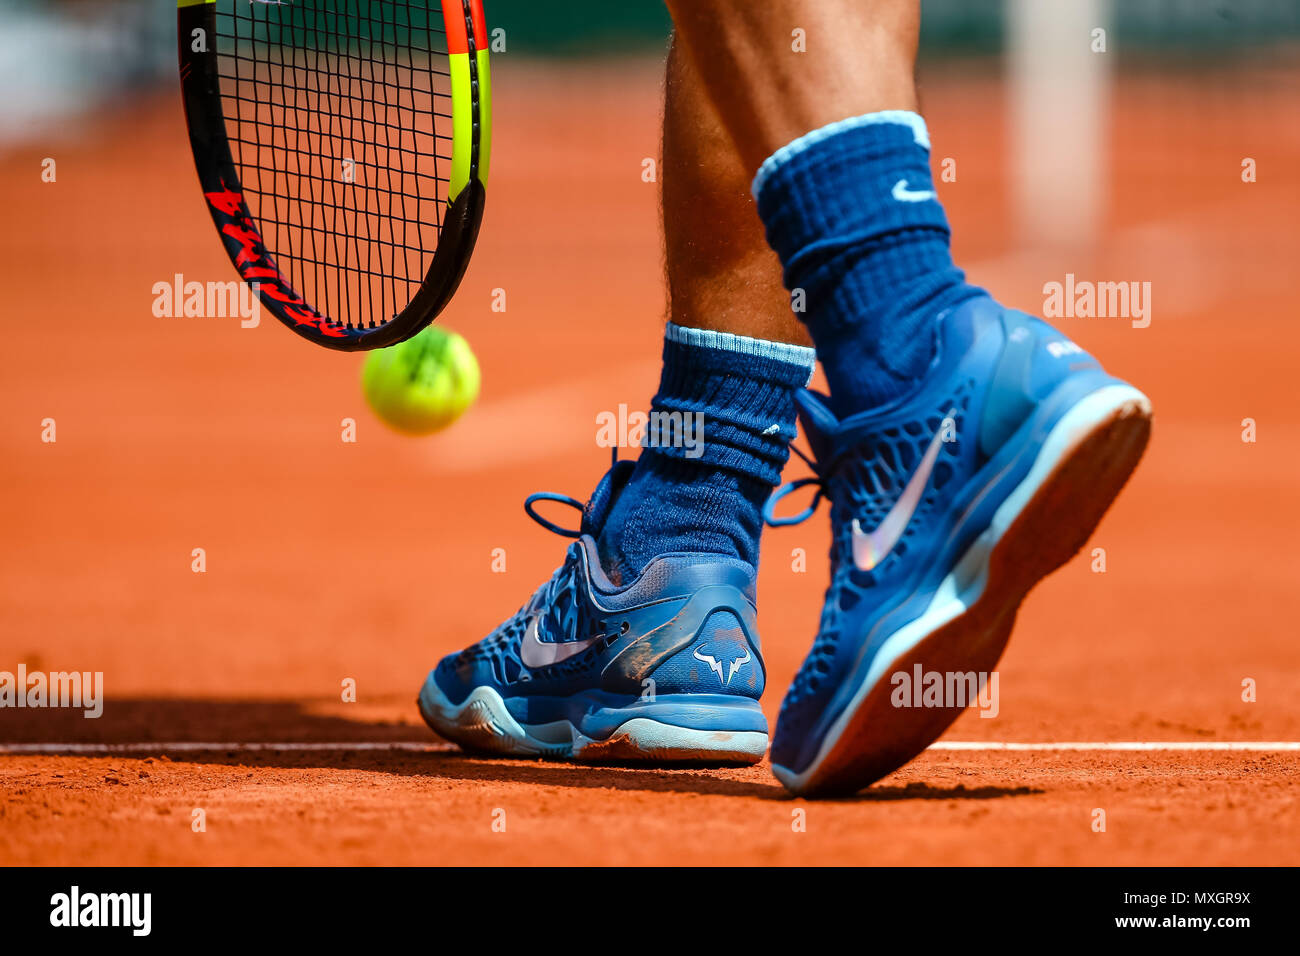 ParisFrance4th during Nadal Spain June2018Rafael of HeW29EDIY